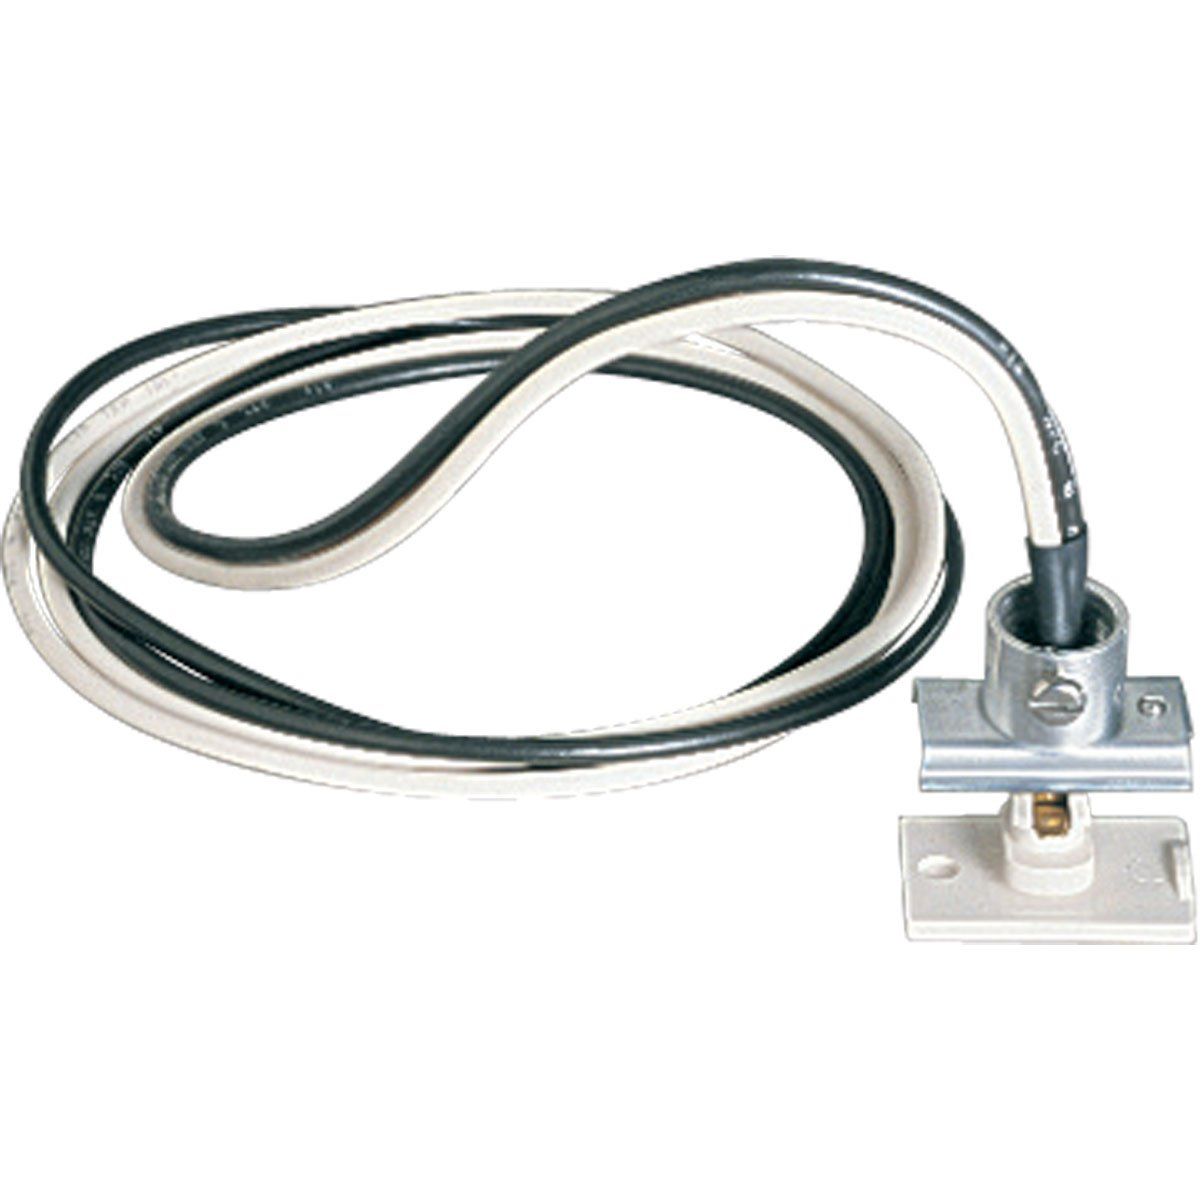 Progress Lighting P9121-28 Anywhere Power Feed with 3/8-Inch Greenfield Connector, Bright White